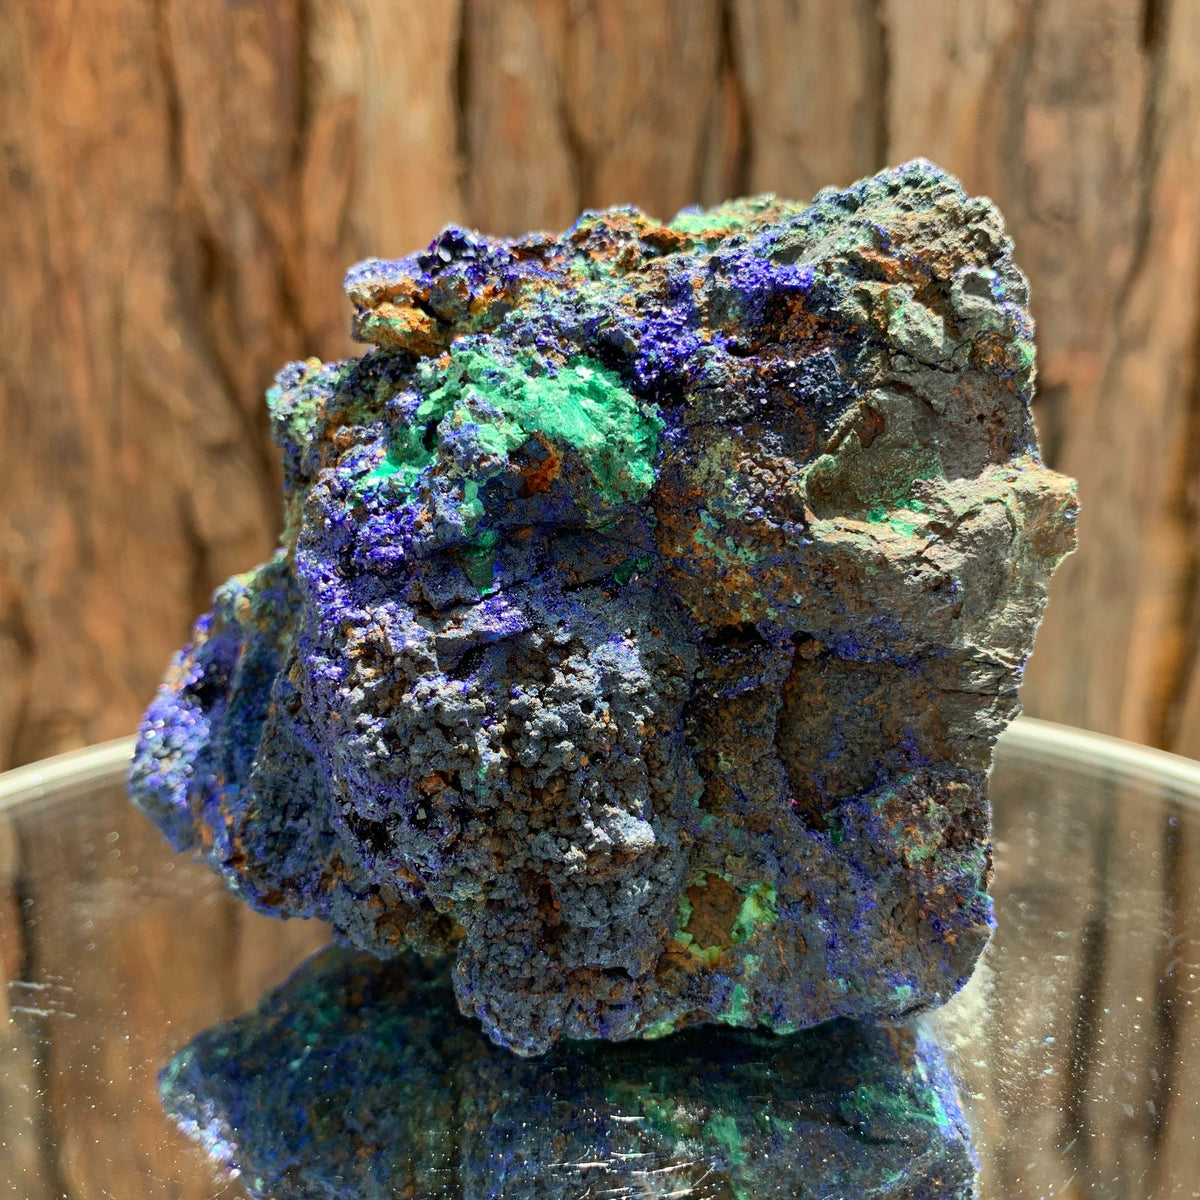 9.2cm 694g Azurite from Sepon Mine, Laos